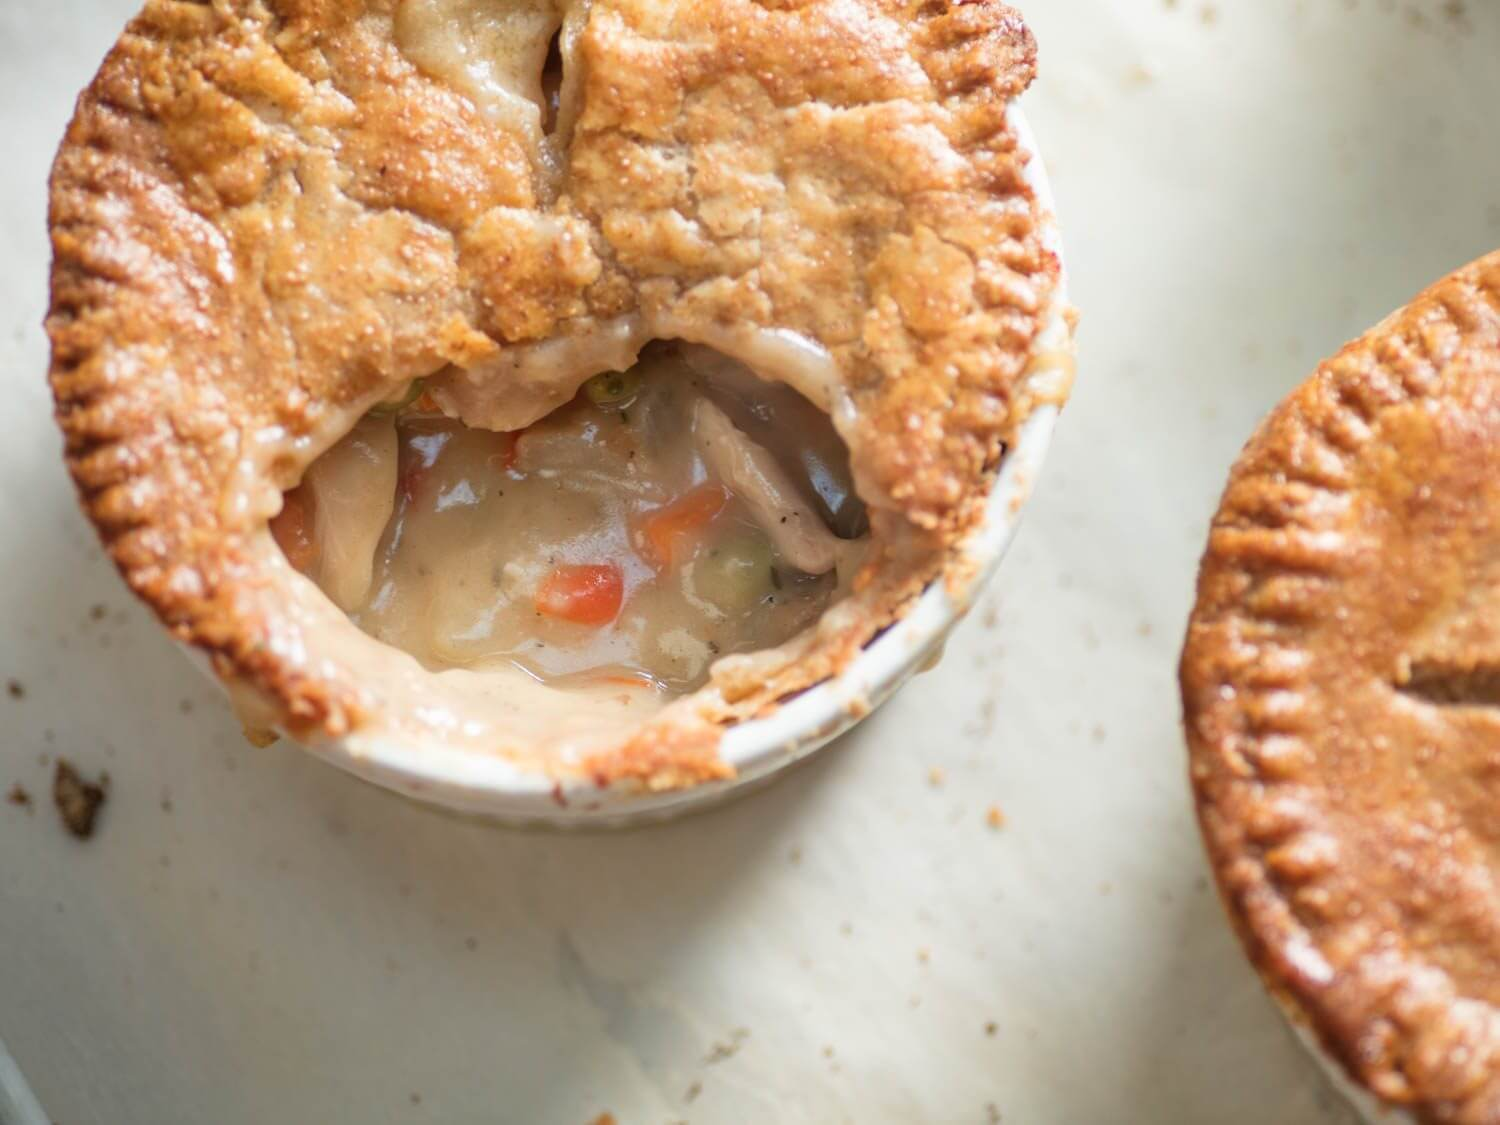 You've had chicken pot pit, but have you tried pizza pot pie?